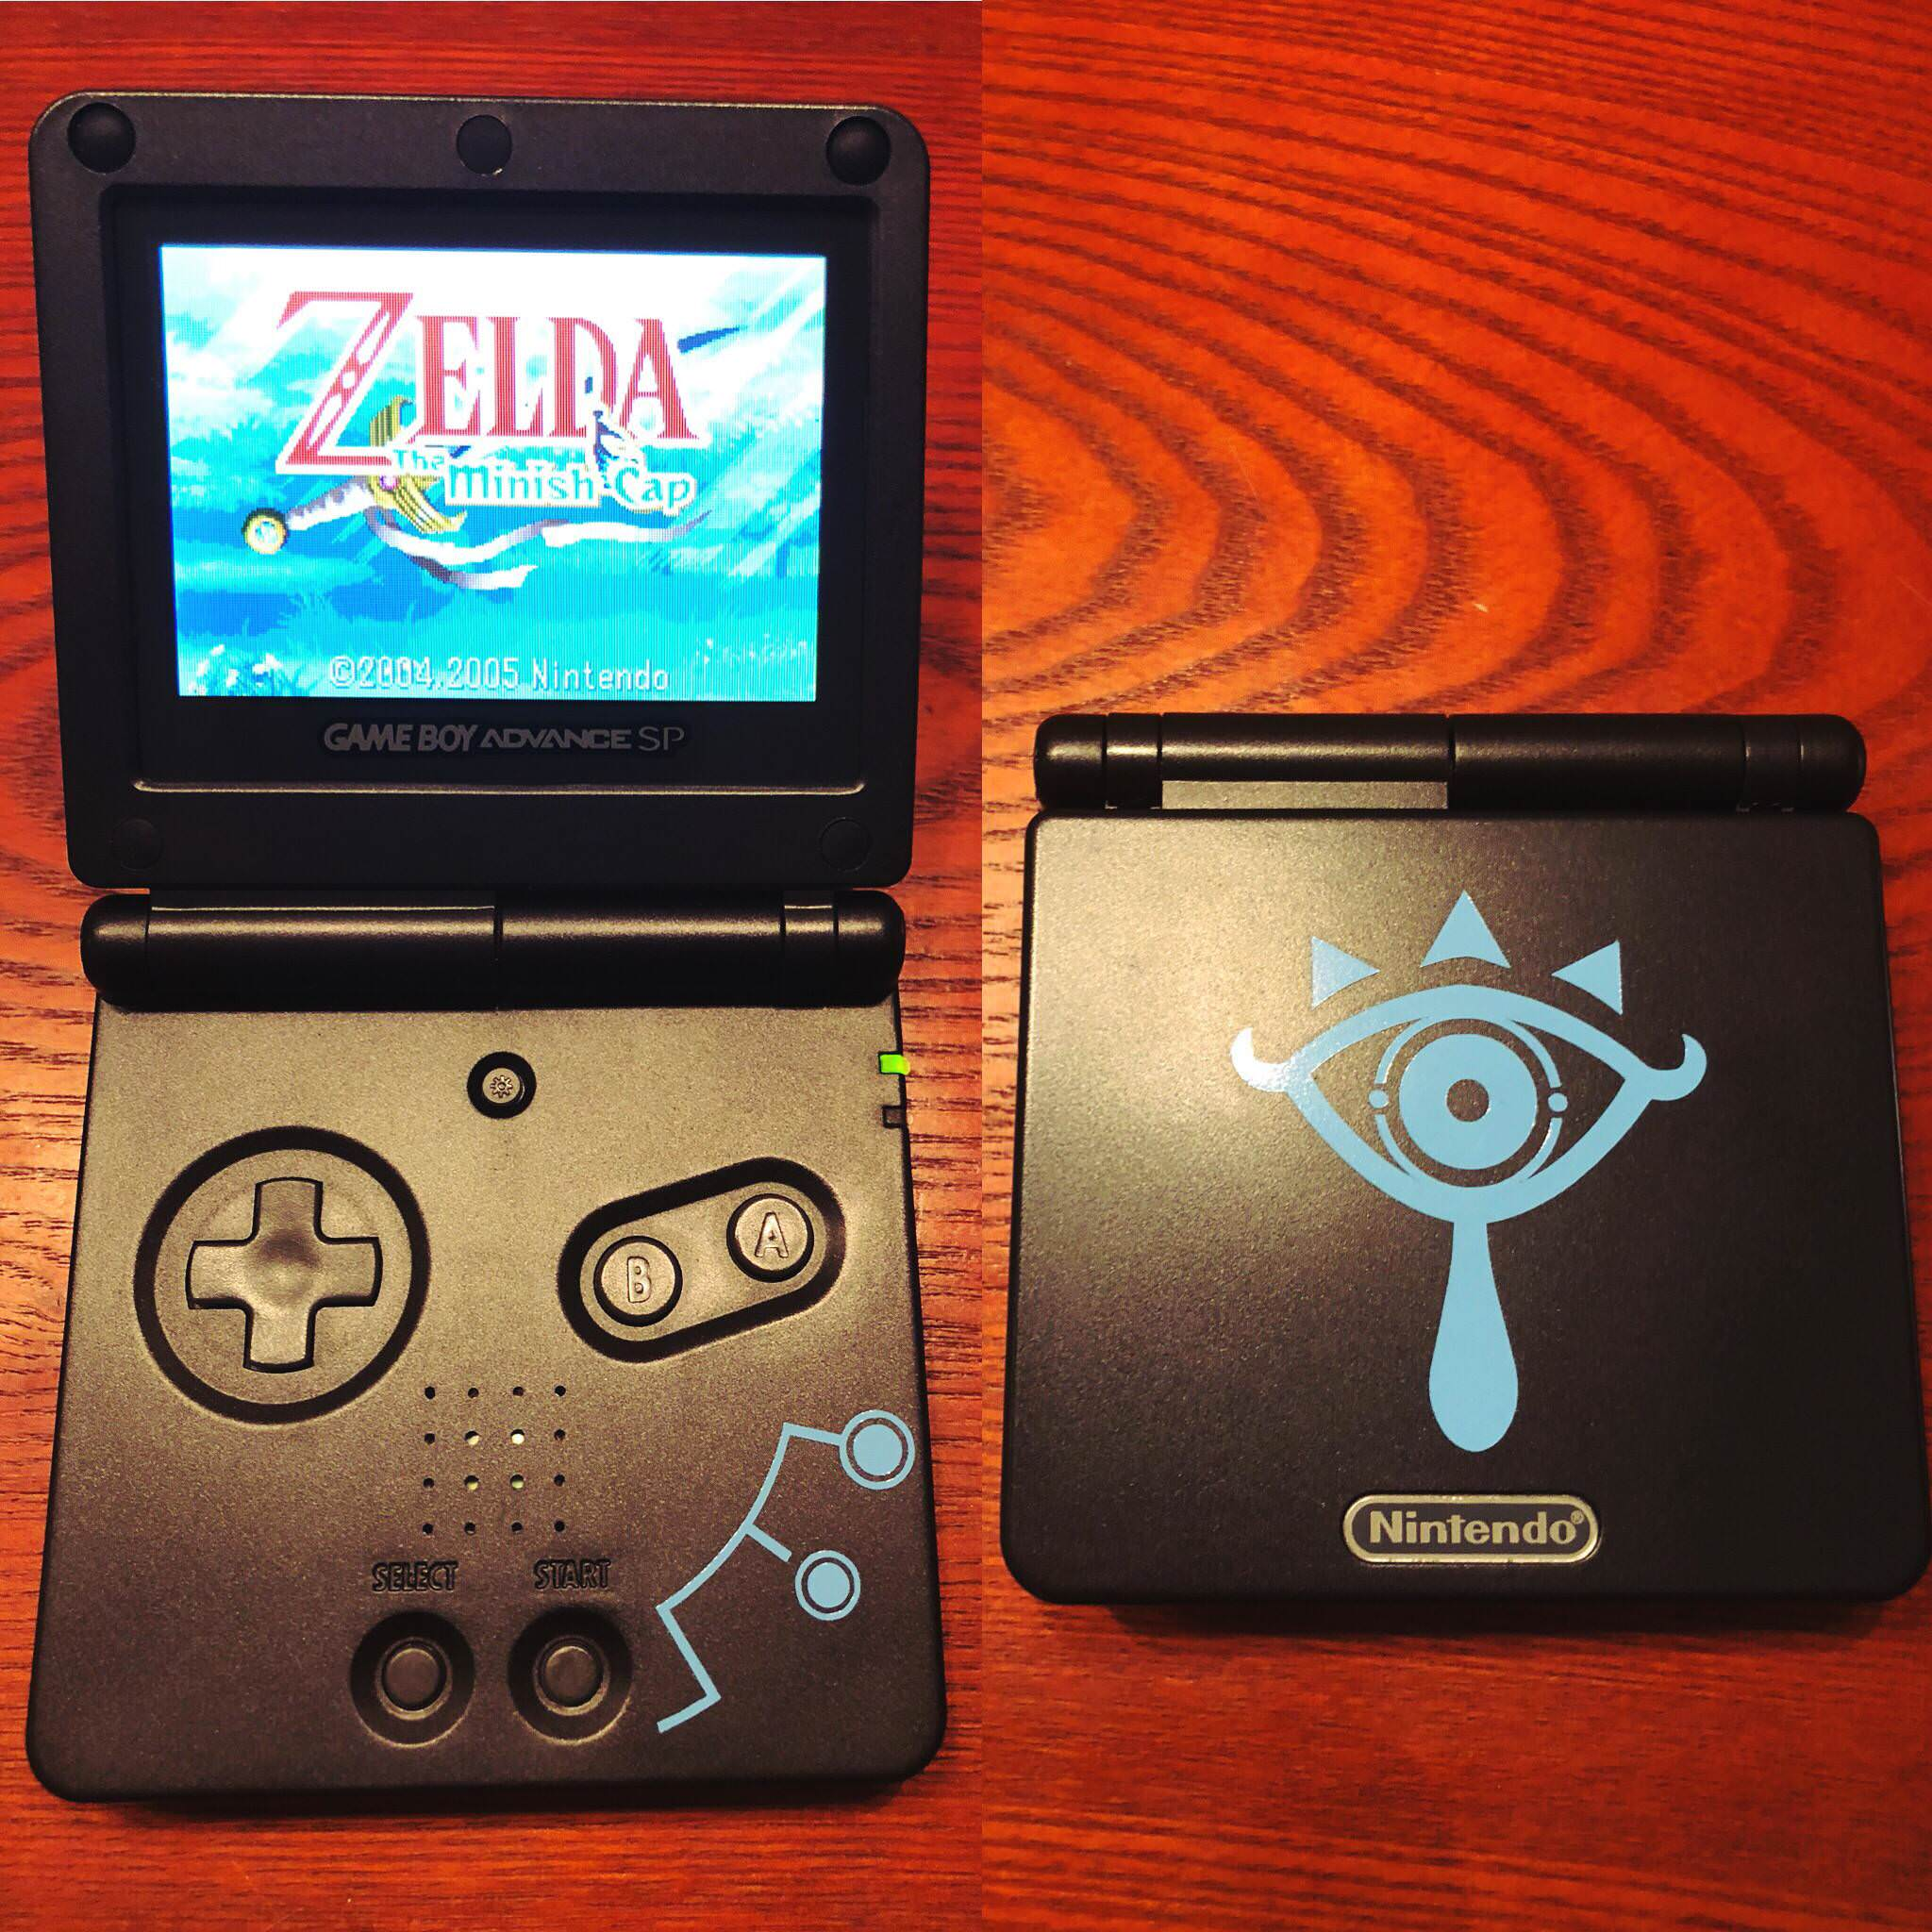 This low key custom Zelda: Breath of the Wild Game Boy Advance SP put me in the mood to play Minish Cap screenshot